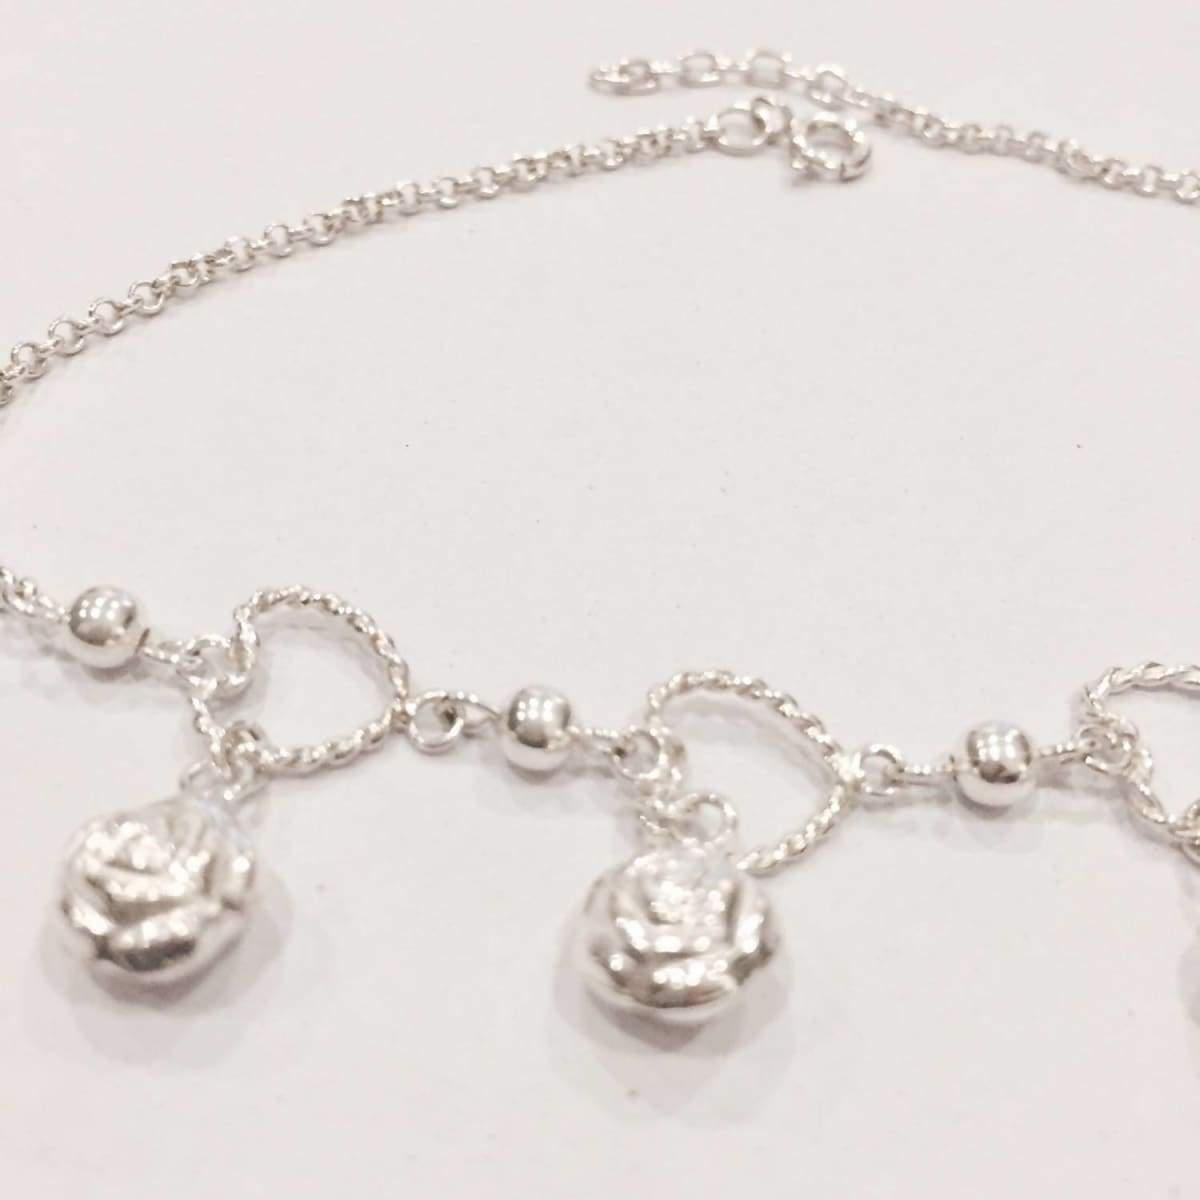 Anklets Sterling silver anklet Silver rose and hearts charm,Rolo chain,Delicate foot chain Anklet,(AS 30)